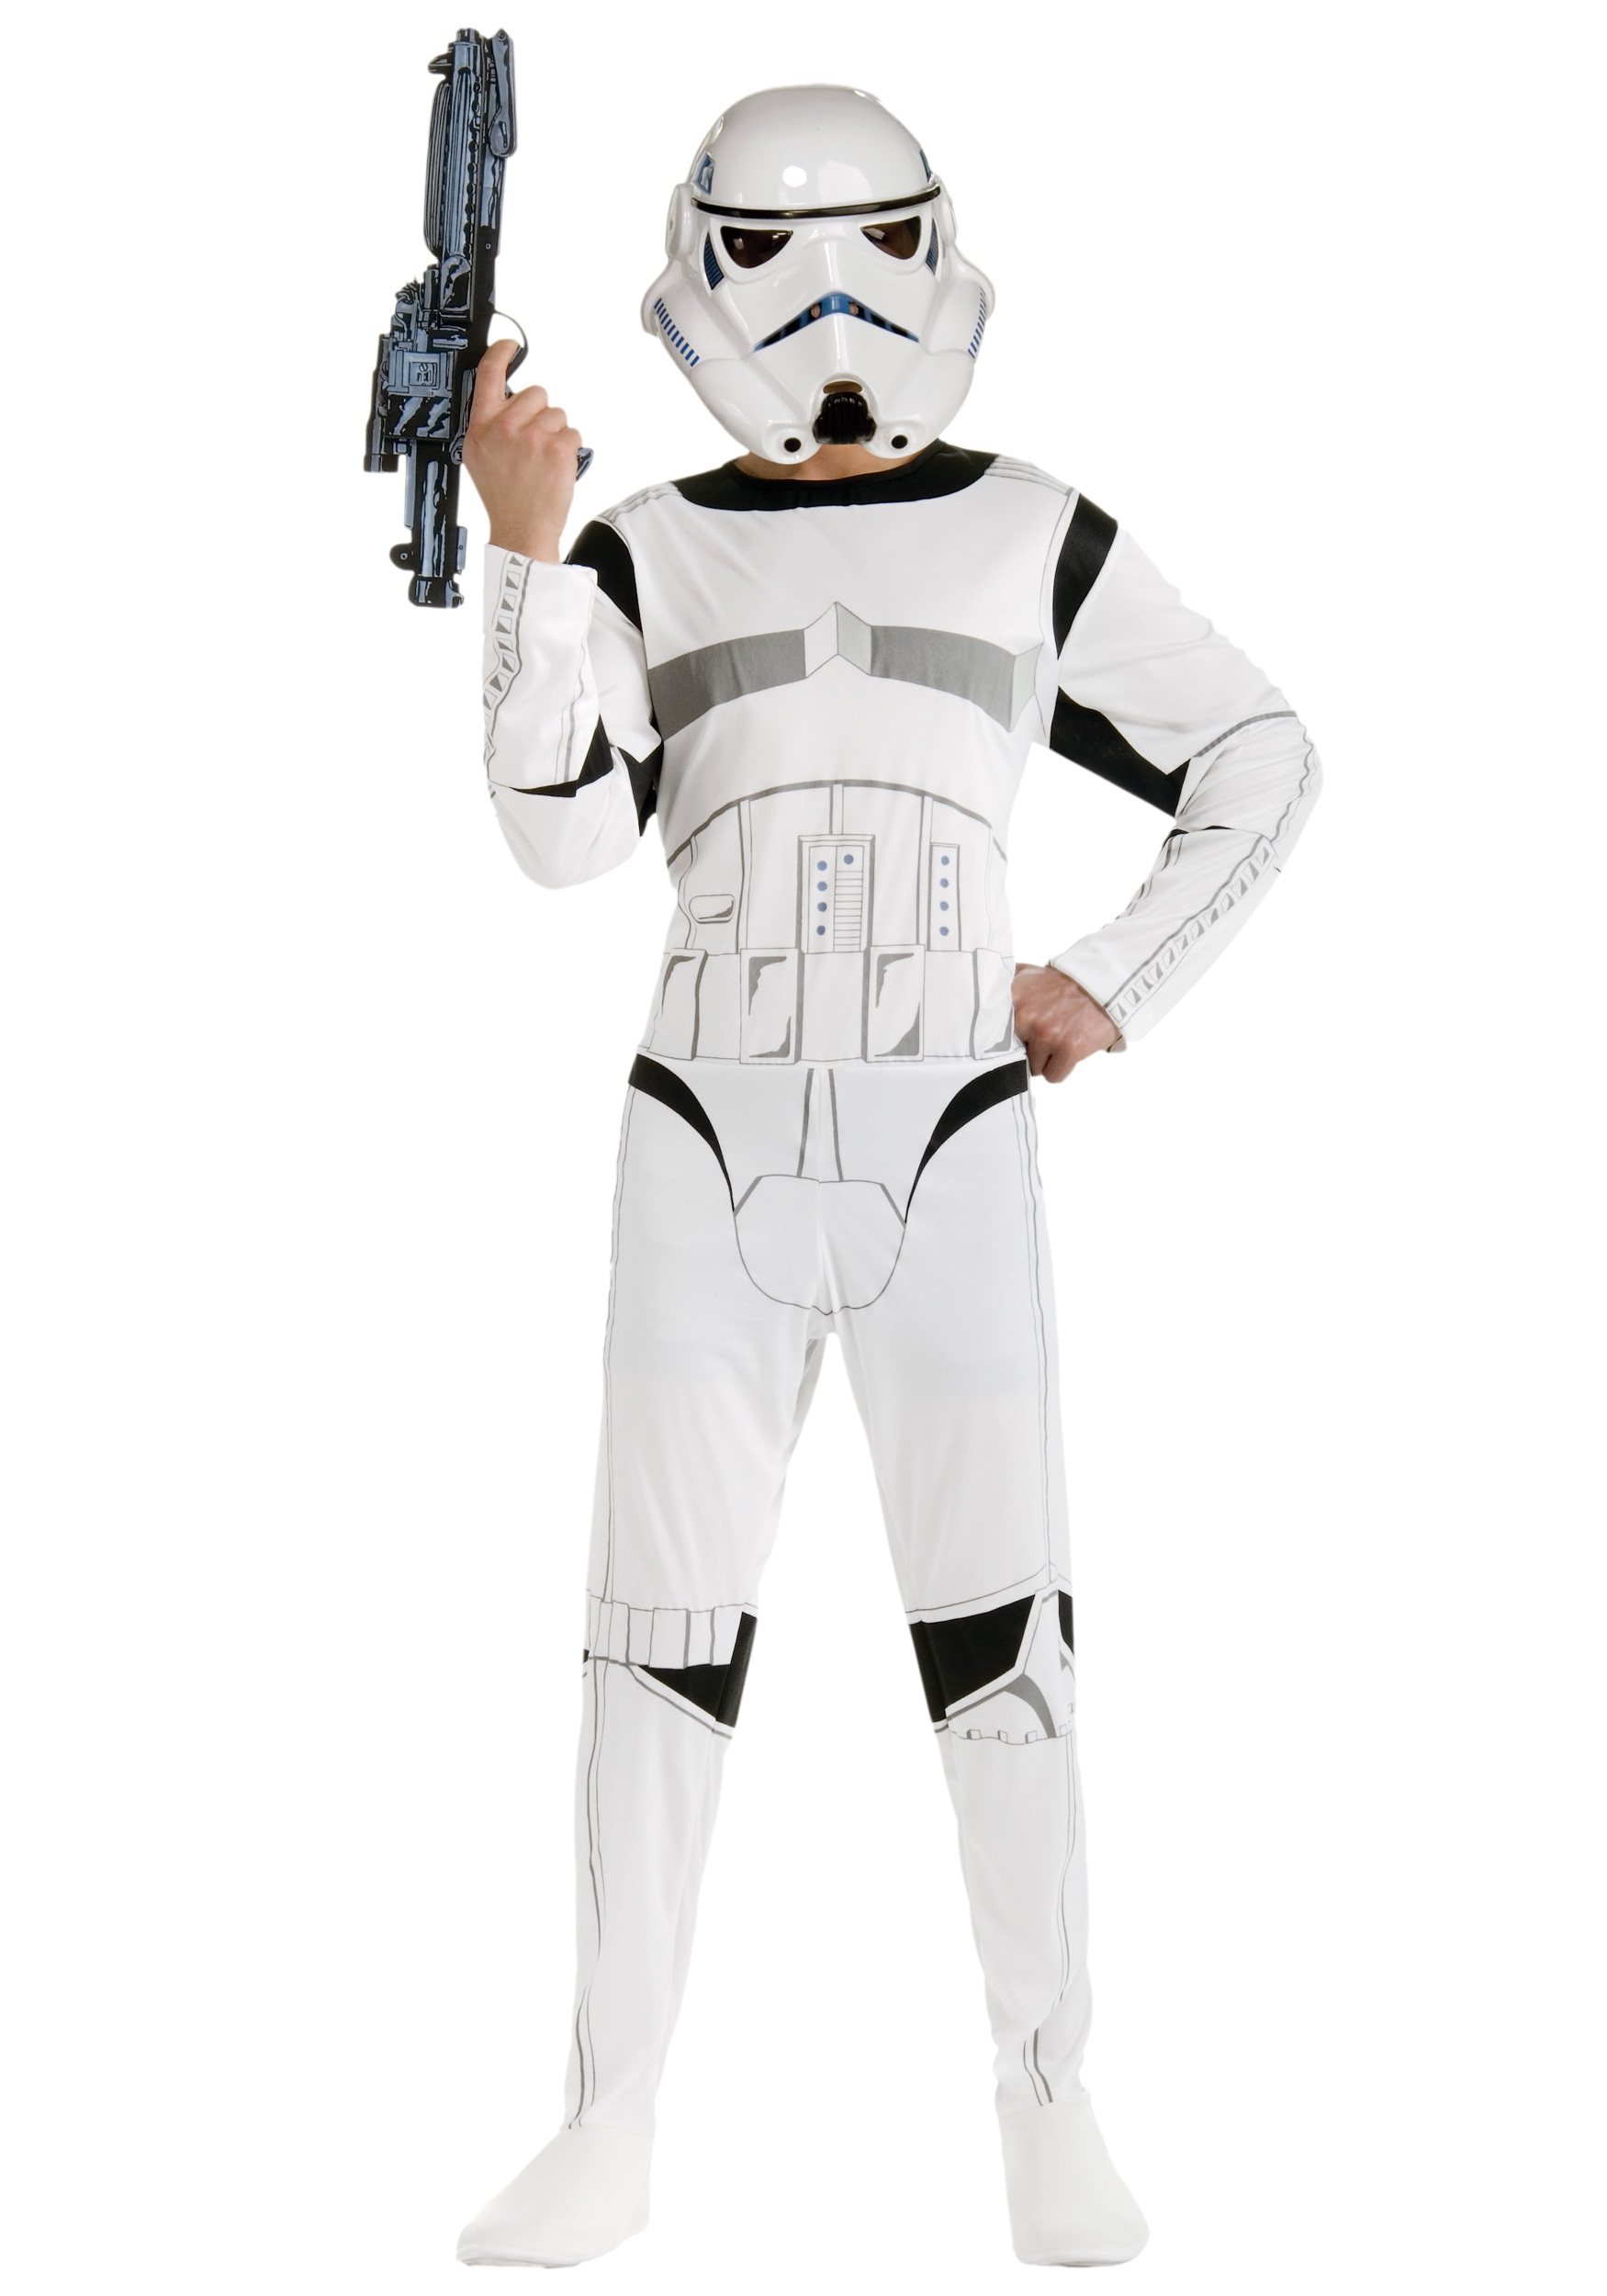 Imperial Stormtrooper Costume  sc 1 st  Buy Star Wars Costumes & Adult Star Wars Imperial Stormtrooper Costume